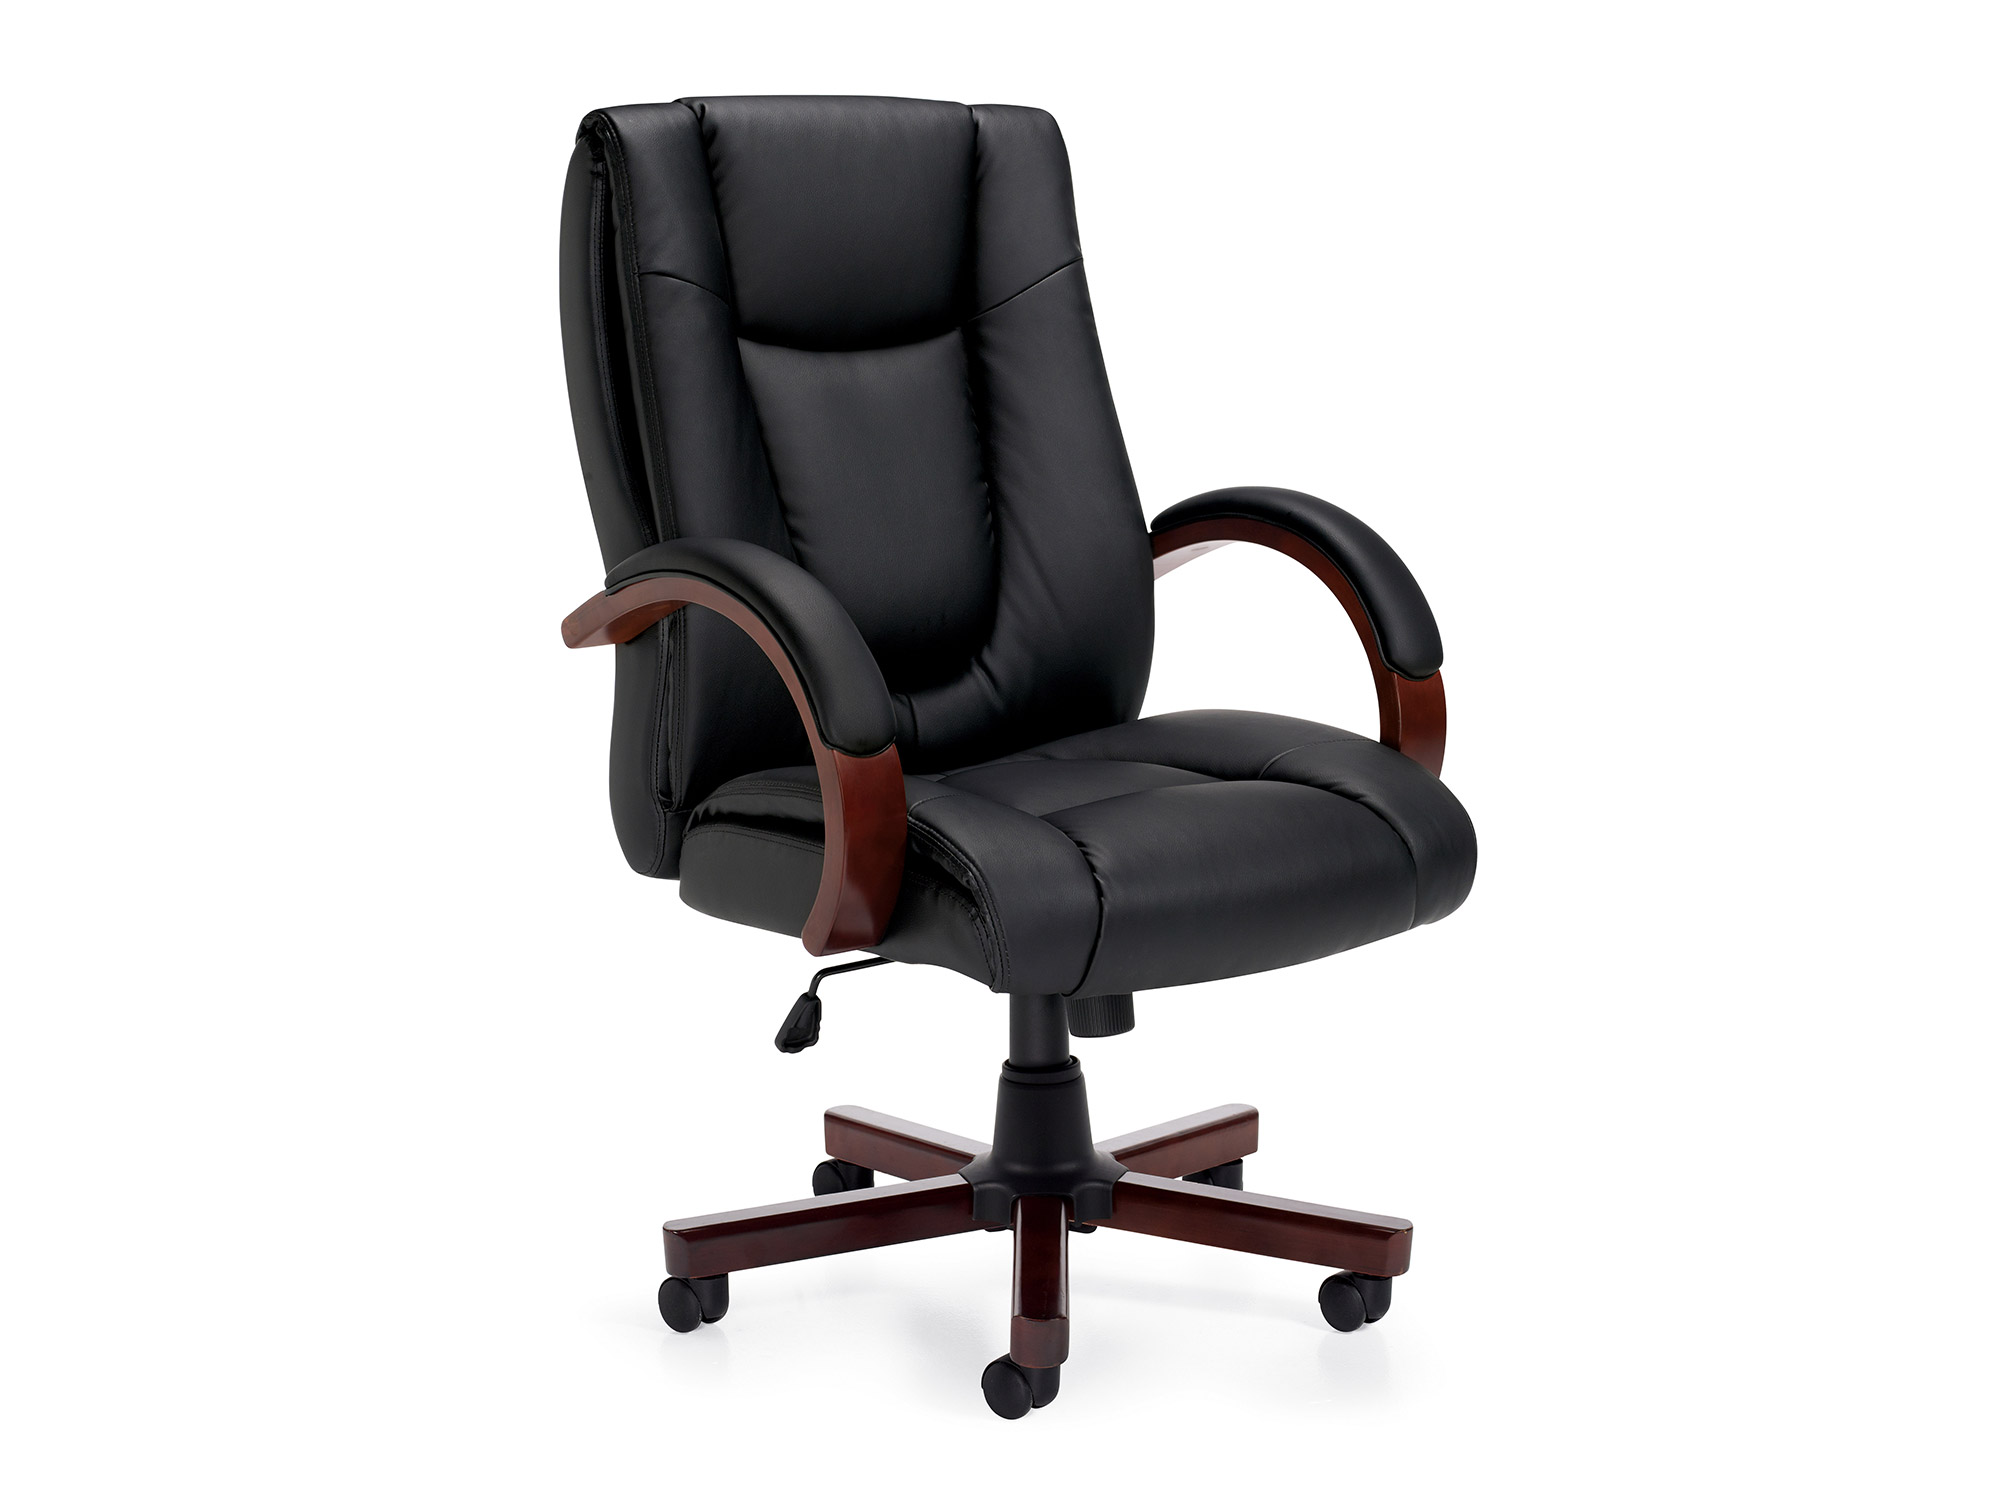 Chairs For Office #11300B